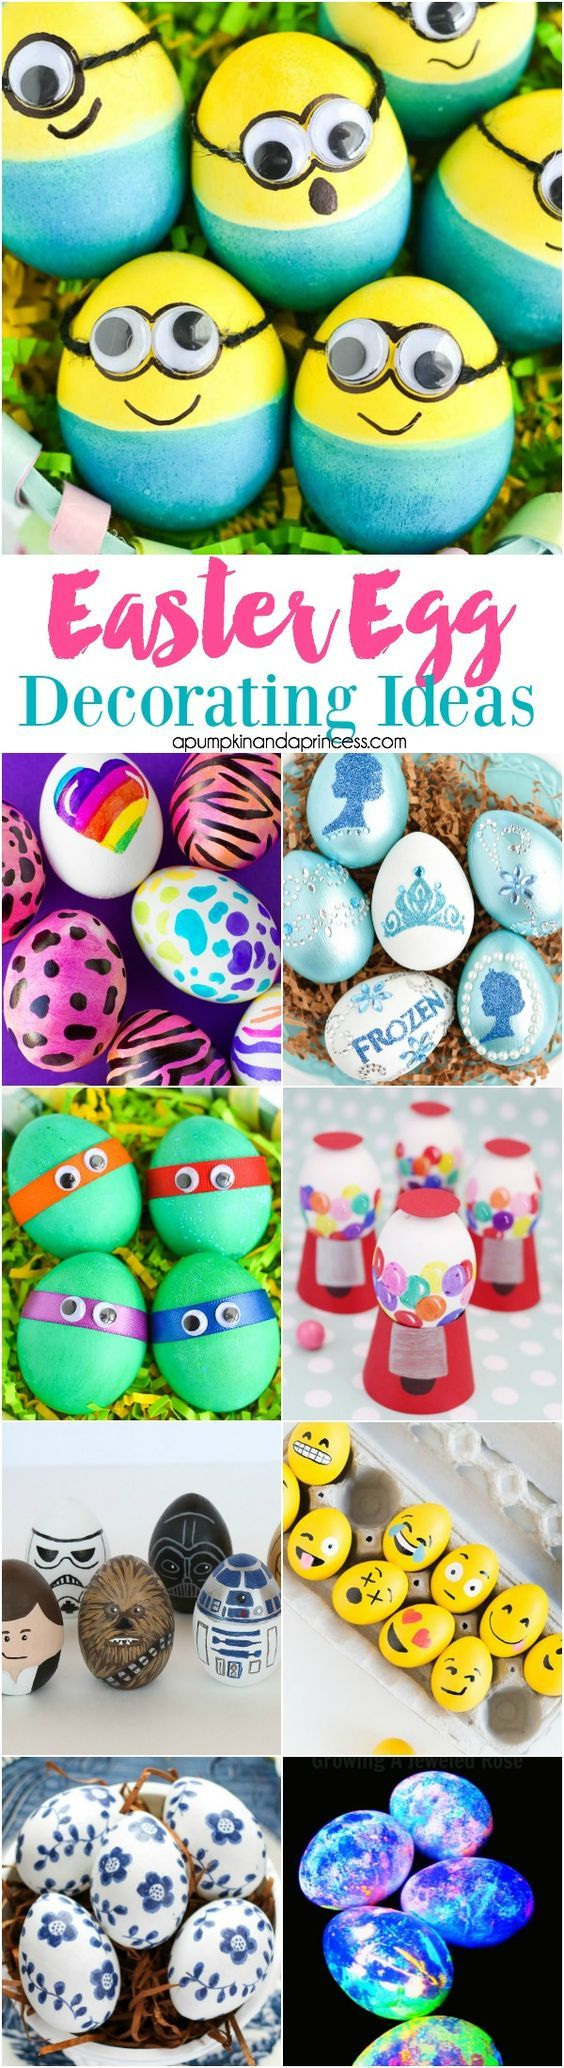 1000 ideas about easter crafts for adults on pinterest for Spring craft ideas for adults